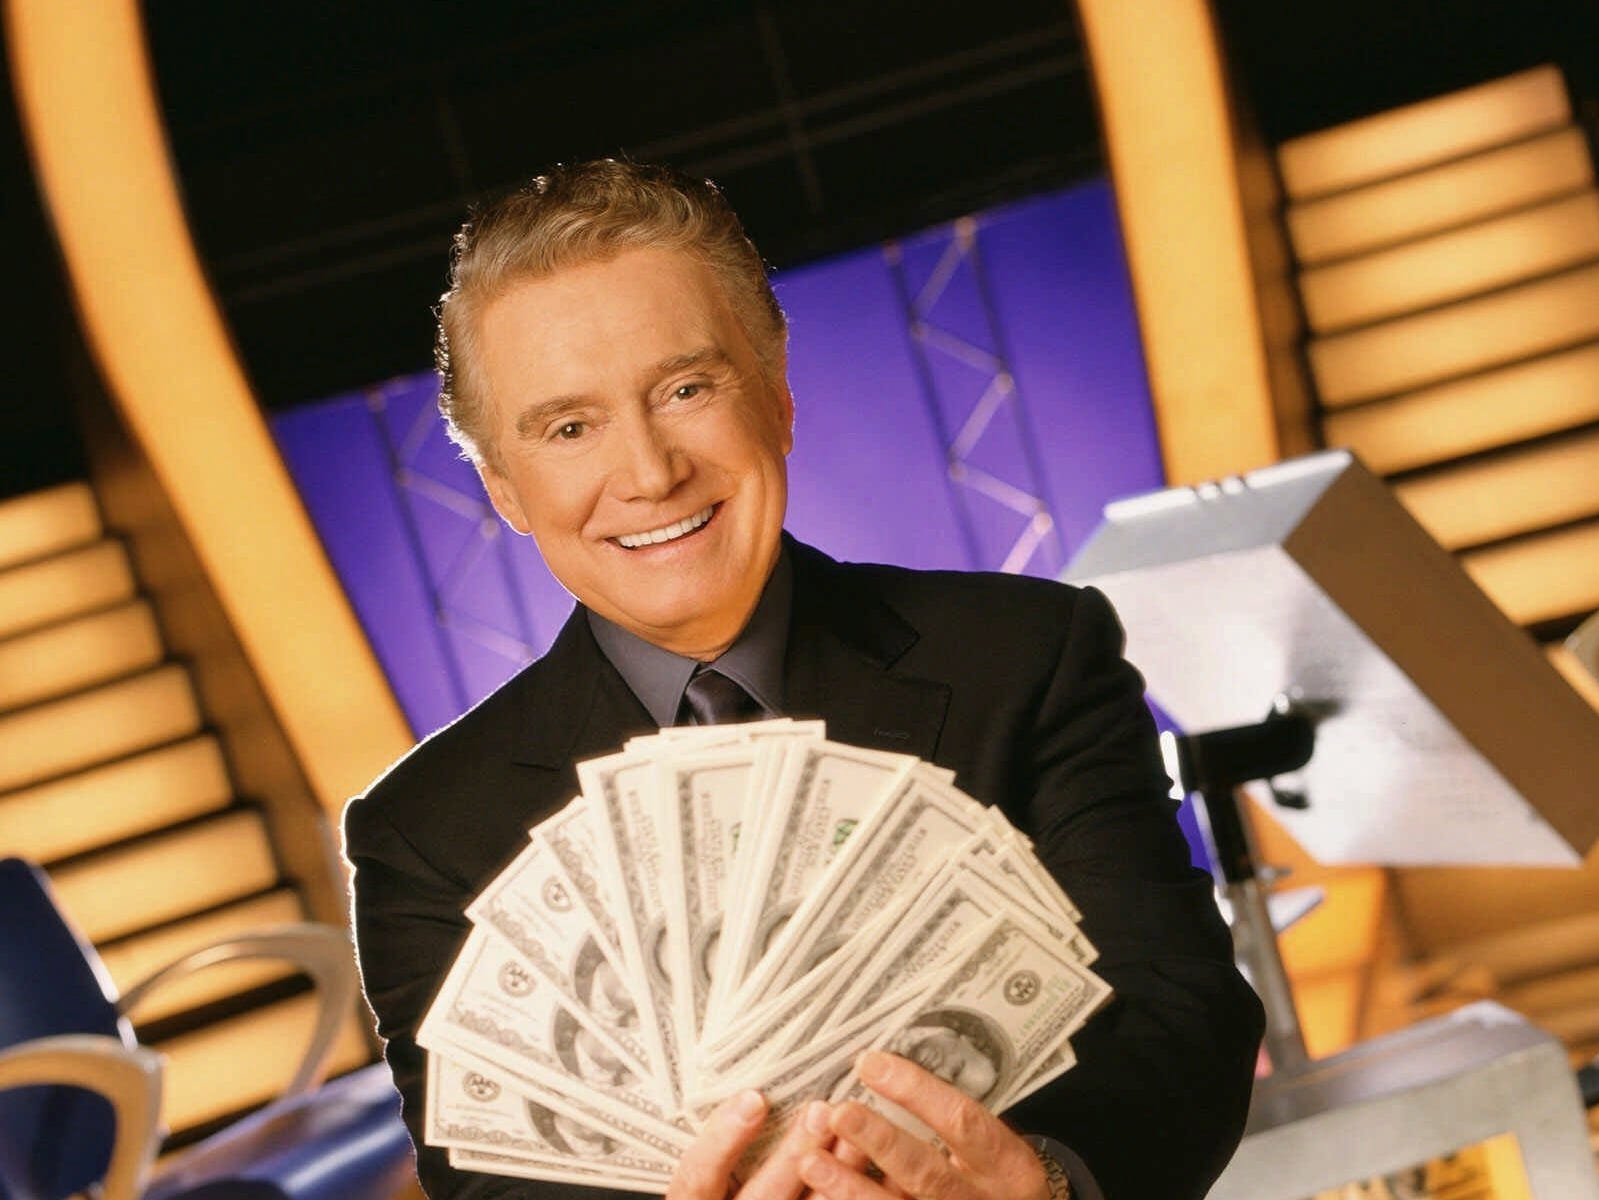 """Regis Philbin as host of """"Who Wants to Be a Millionaire"""" (ABC); August 16, 1999 – June 27, 2002"""